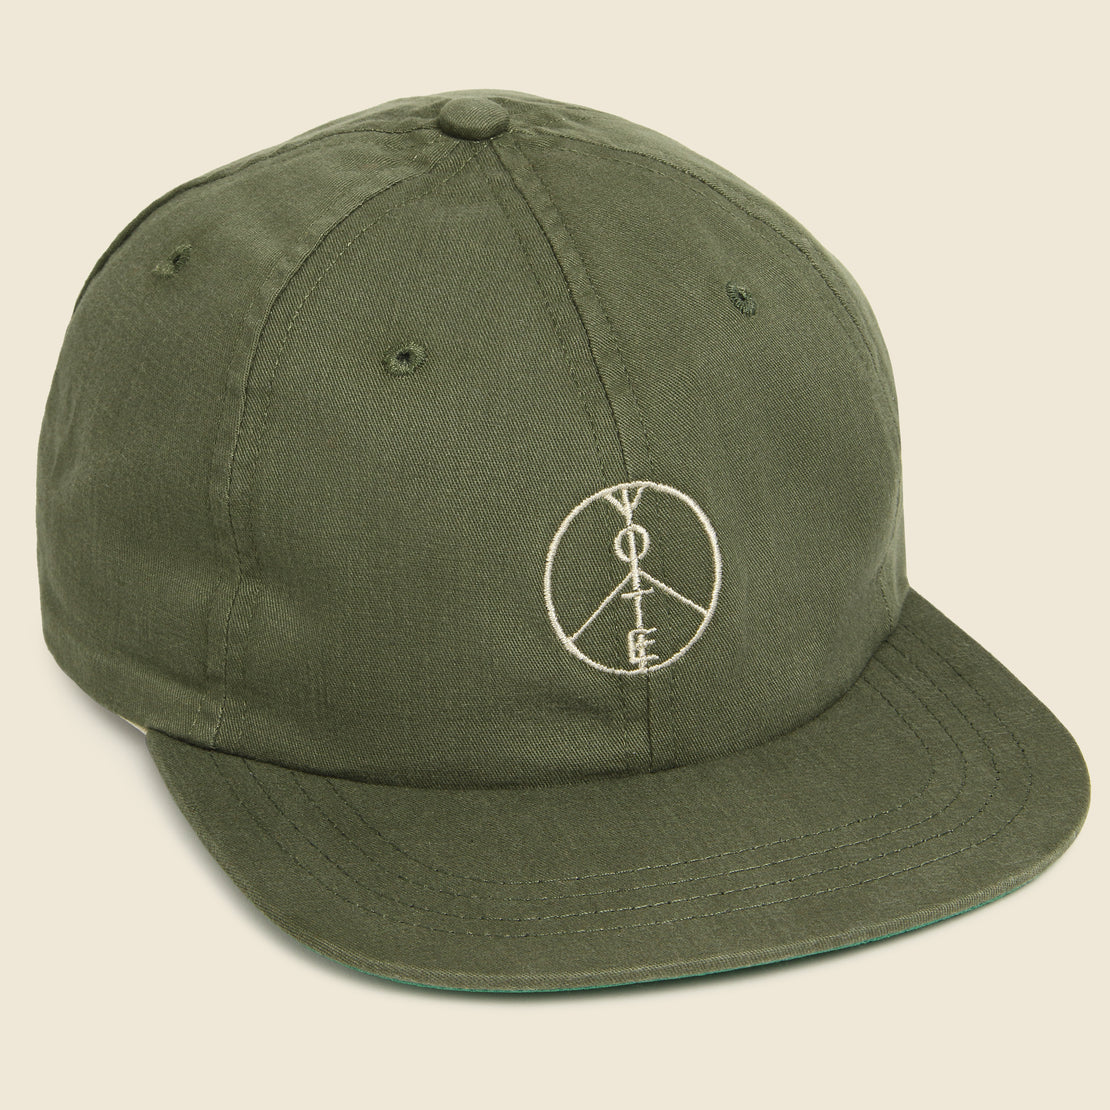 House of LAND STAG Votes Hat - Vote for Peace